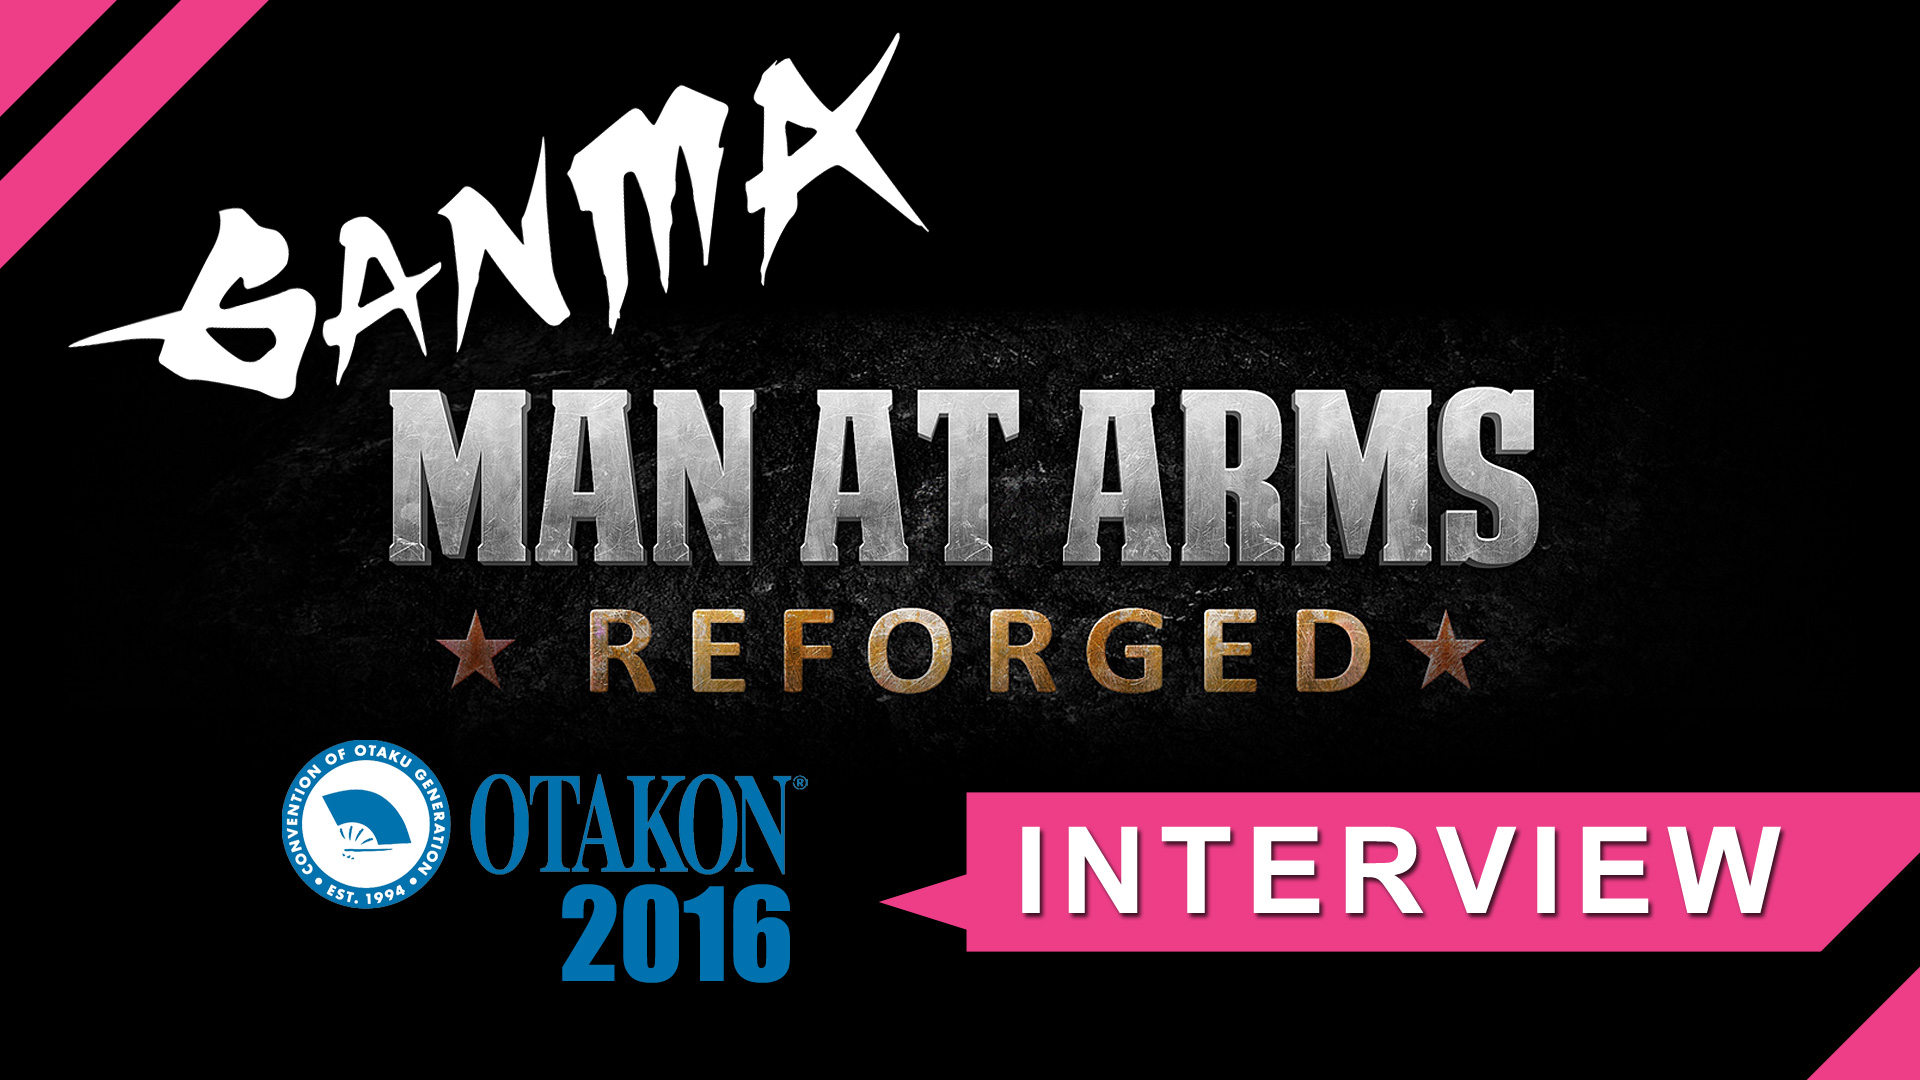 Men At Arms – Otakon 2016 / 360 Ganma Interview | TOFUPROD